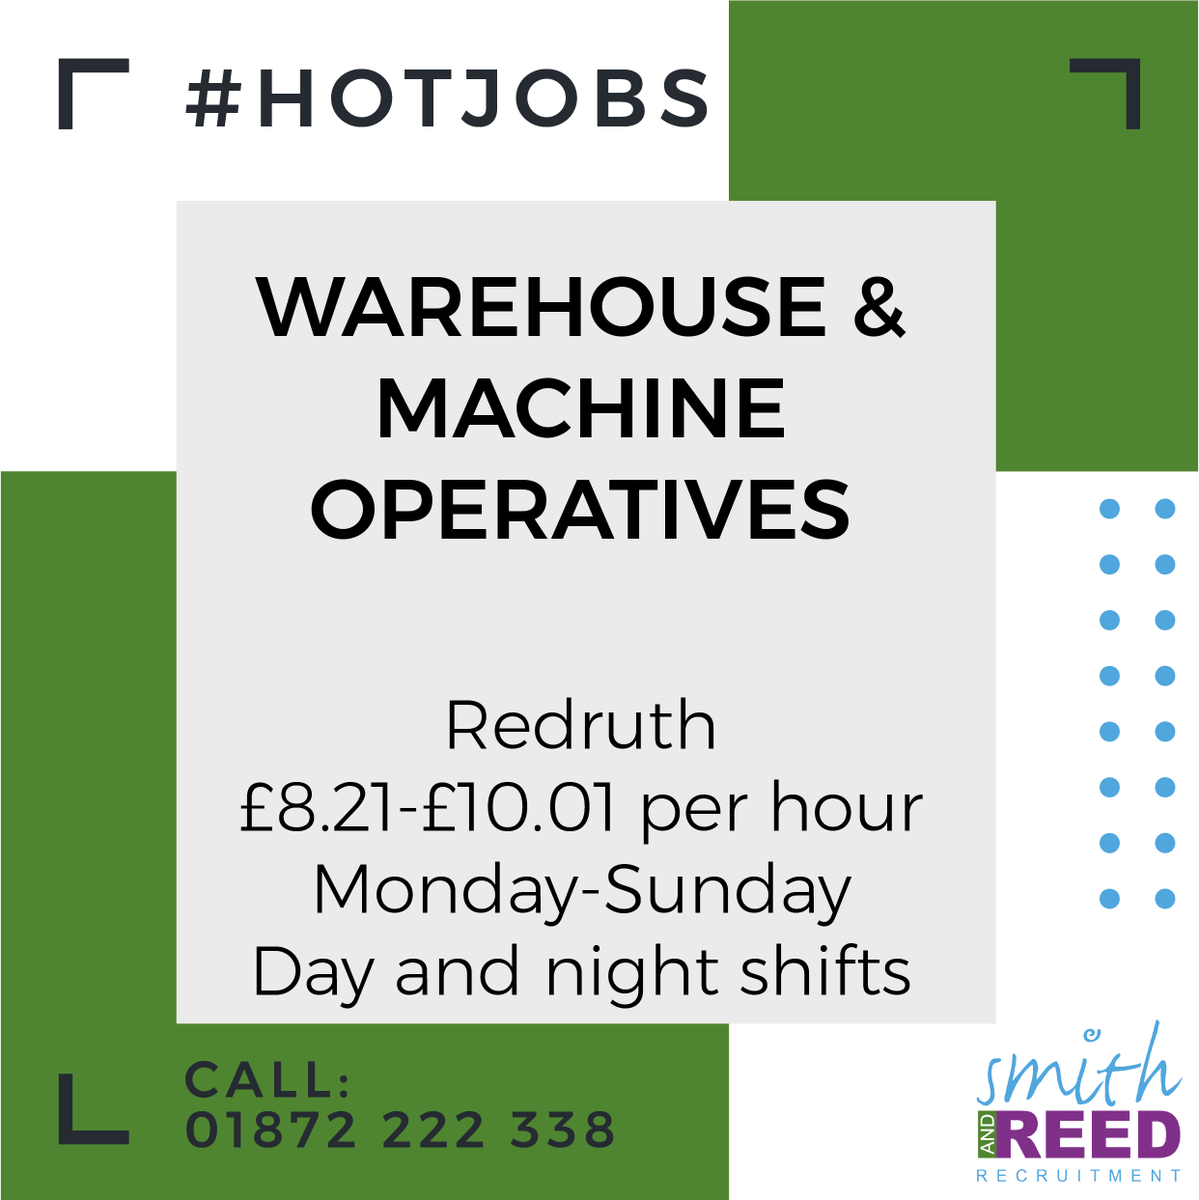 #Warehouse #machine #operatives #redruth #cornwall #cornwalljobs #recruitmentagency #staffing #lookingforwork #jobsearch #smithandreedpic.twitter.com/NJ2RgVU6k2